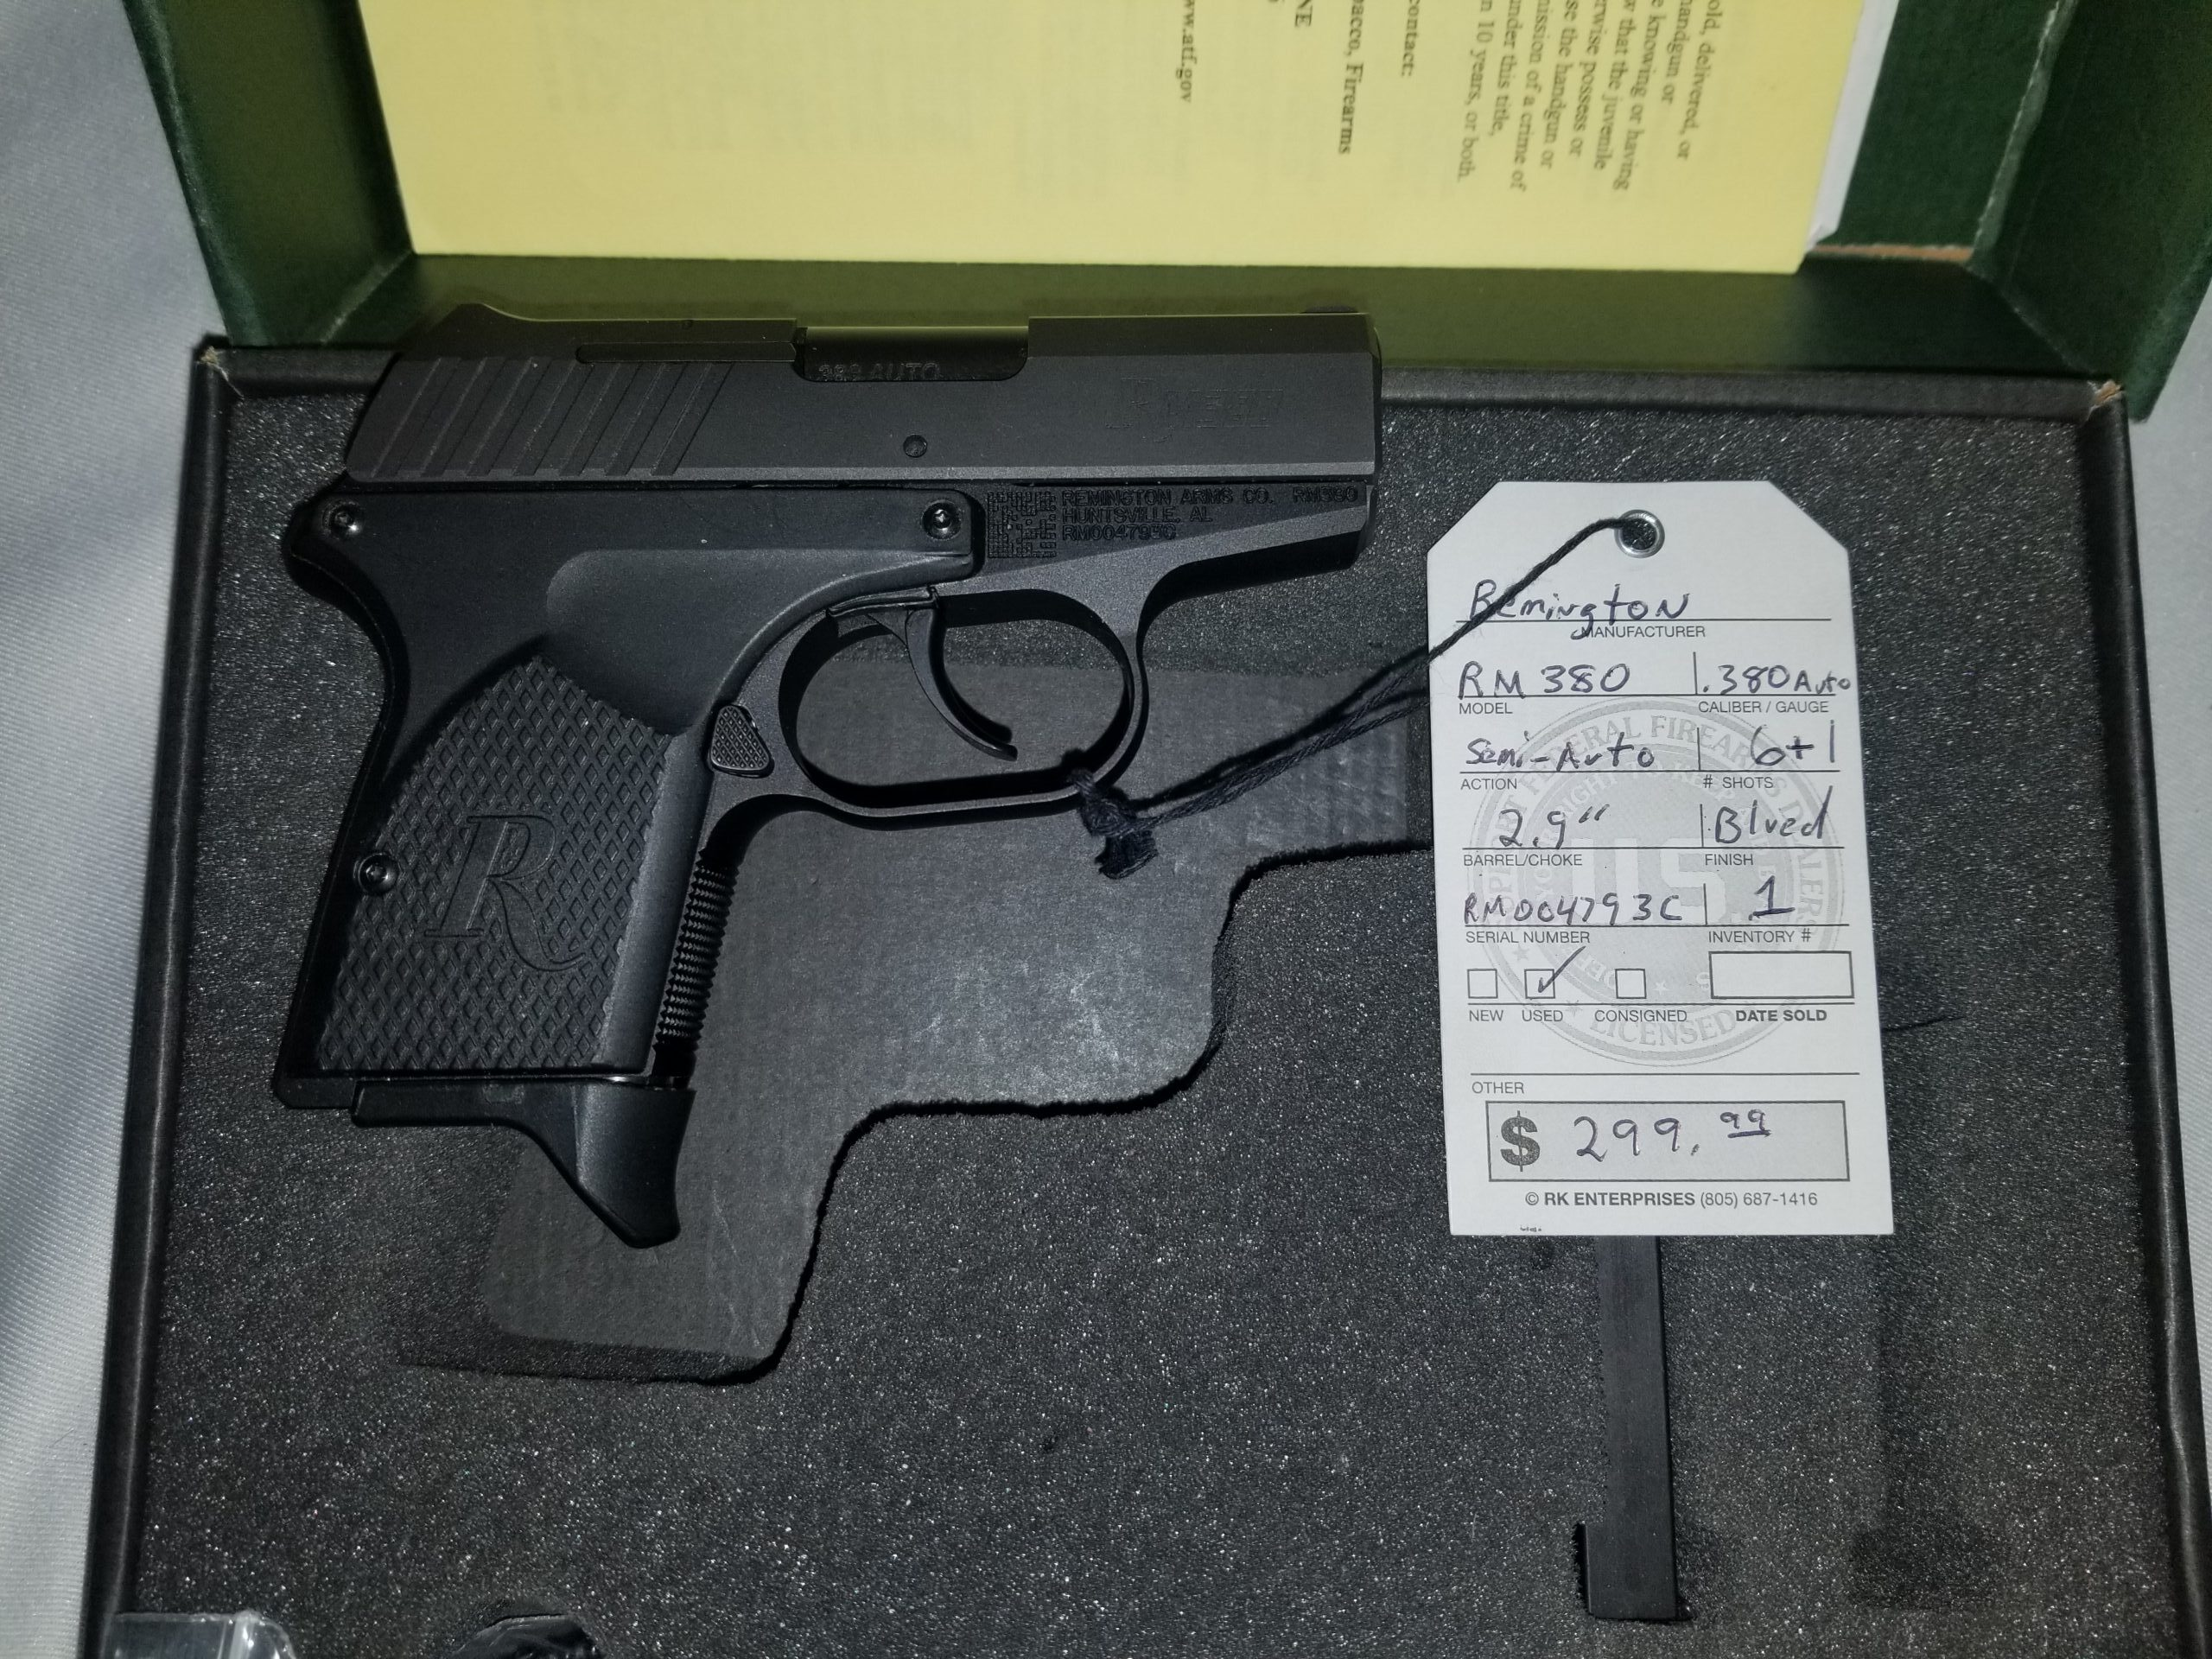 Remington RM380 Semi-Auto in .380 Auto